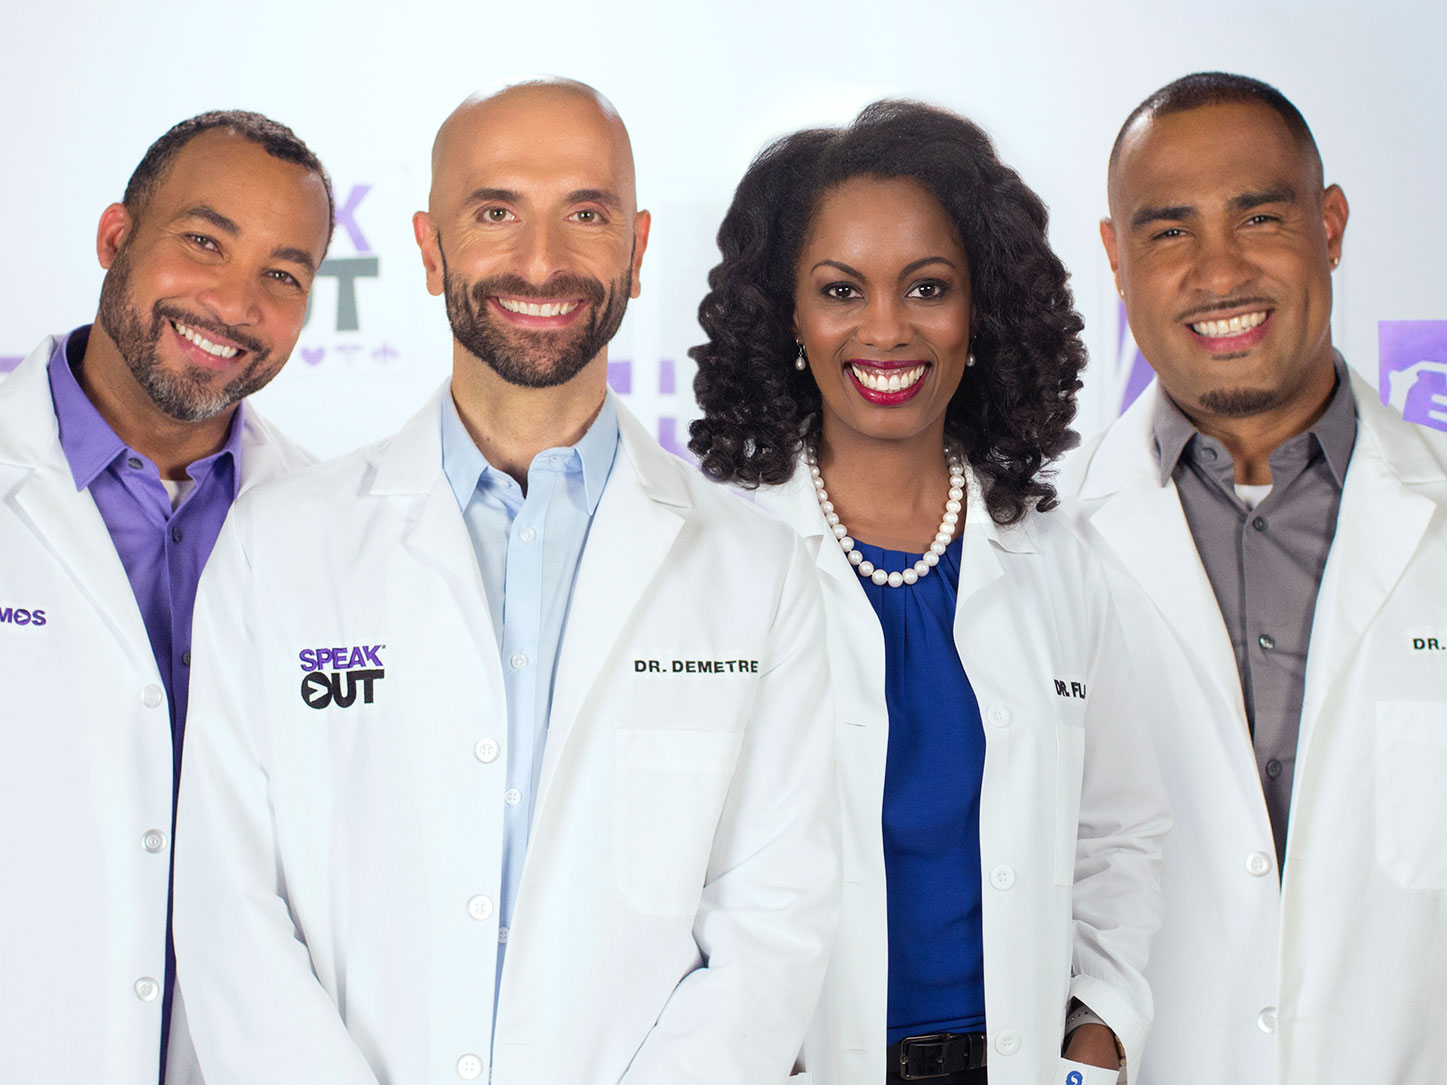 Four HIV specialists smiling